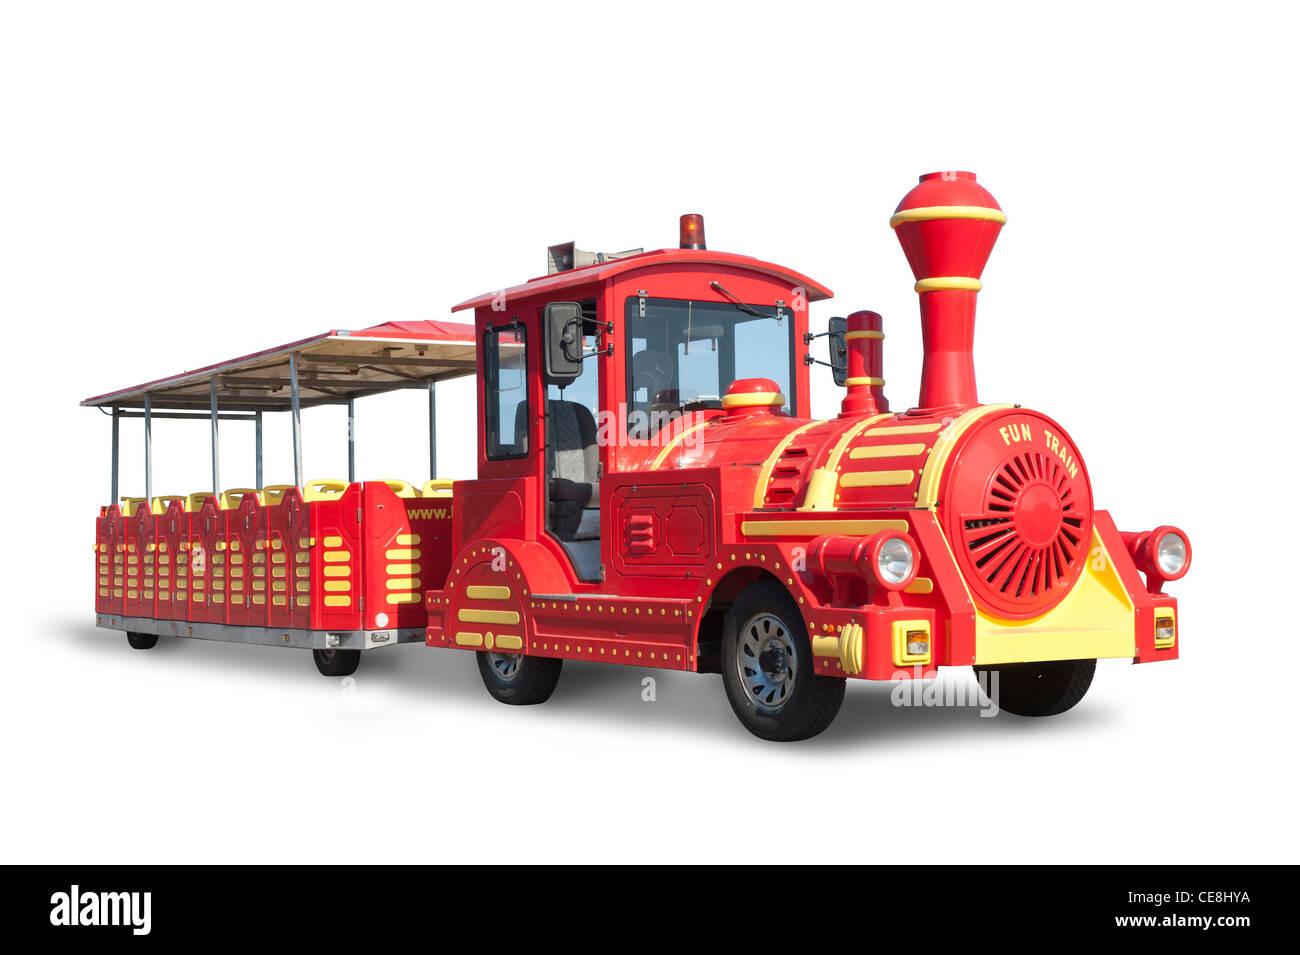 Touristic Train fake old style locomotive - Stock Image